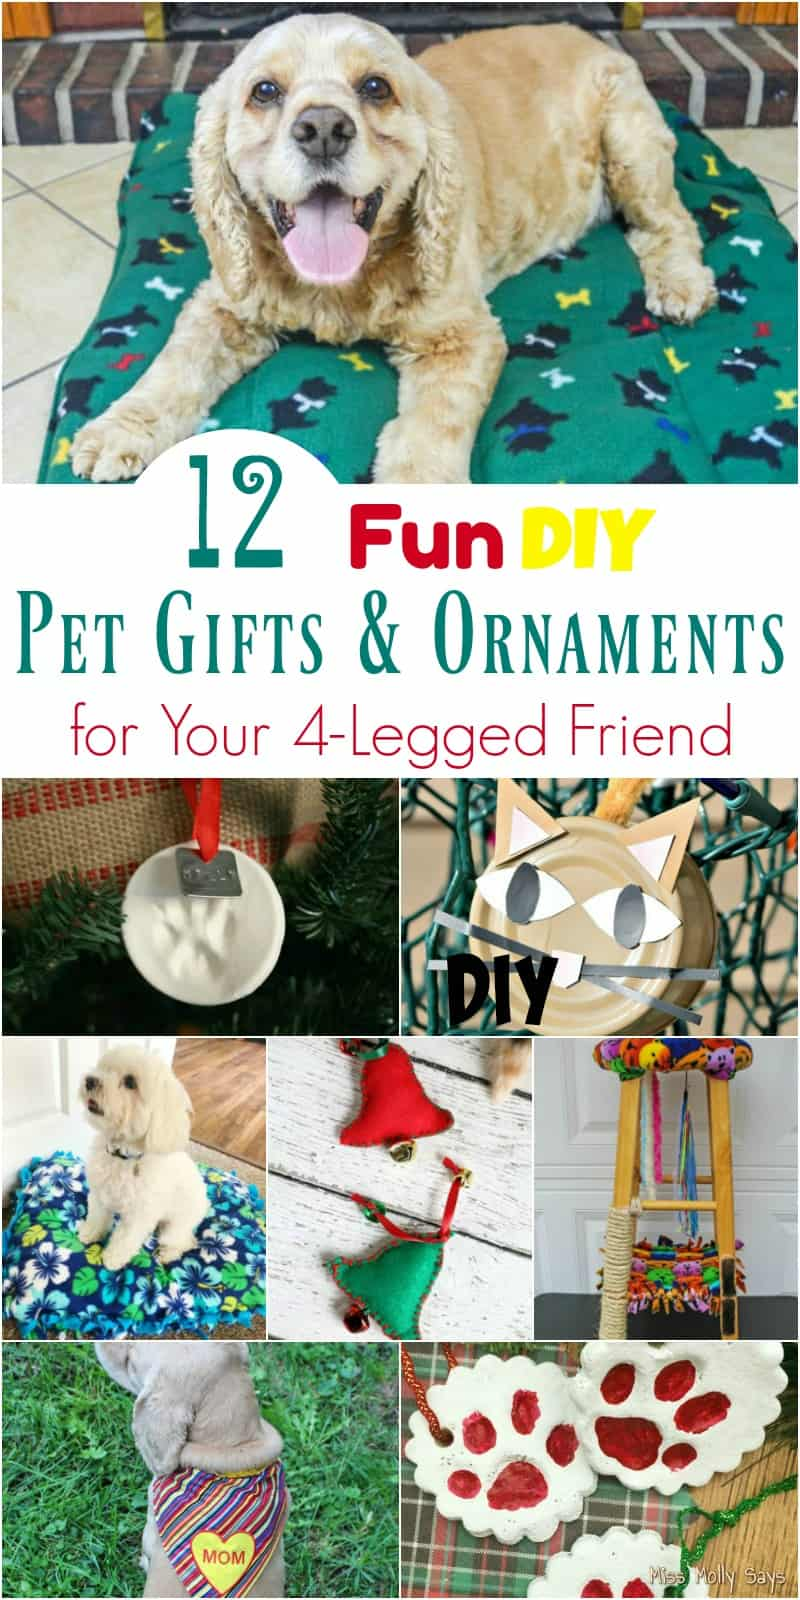 12 Fun DIY Pet Gifts & Ornaments for Your 4-Legged Friend